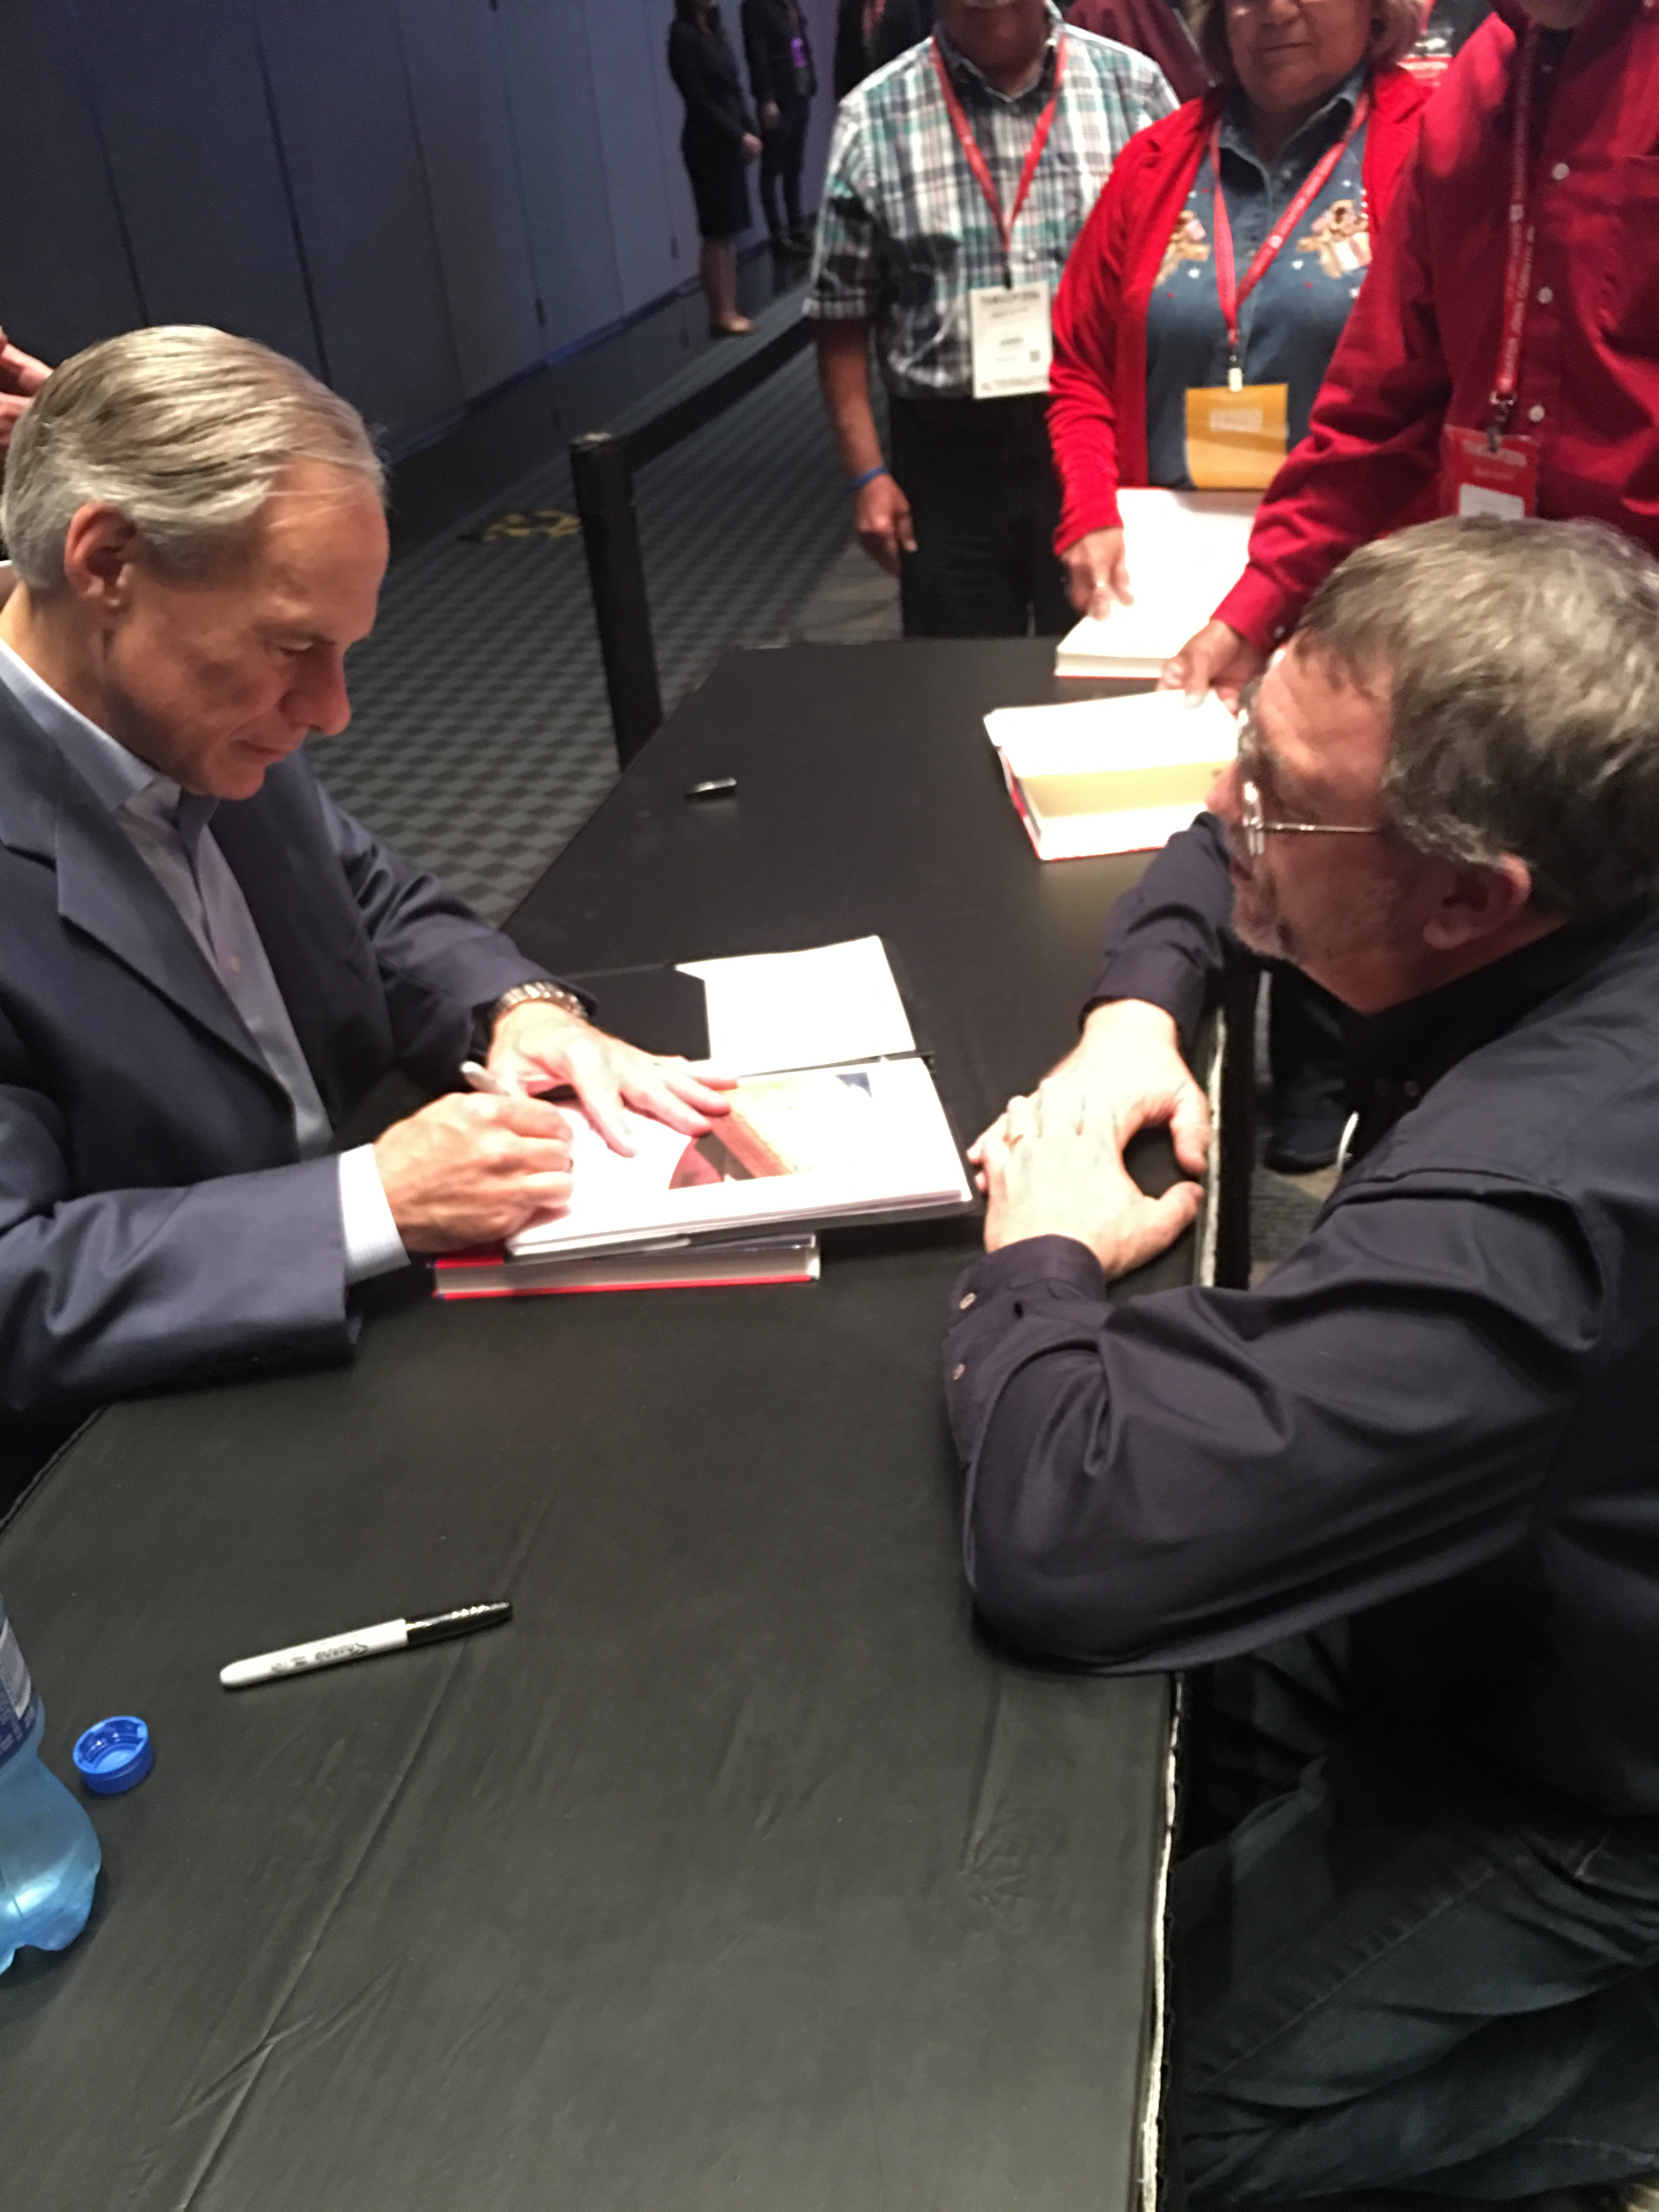 Governor_Abbott_Signs_Paul_Hodson_Copy_of_The_Texas_Plan.JPG